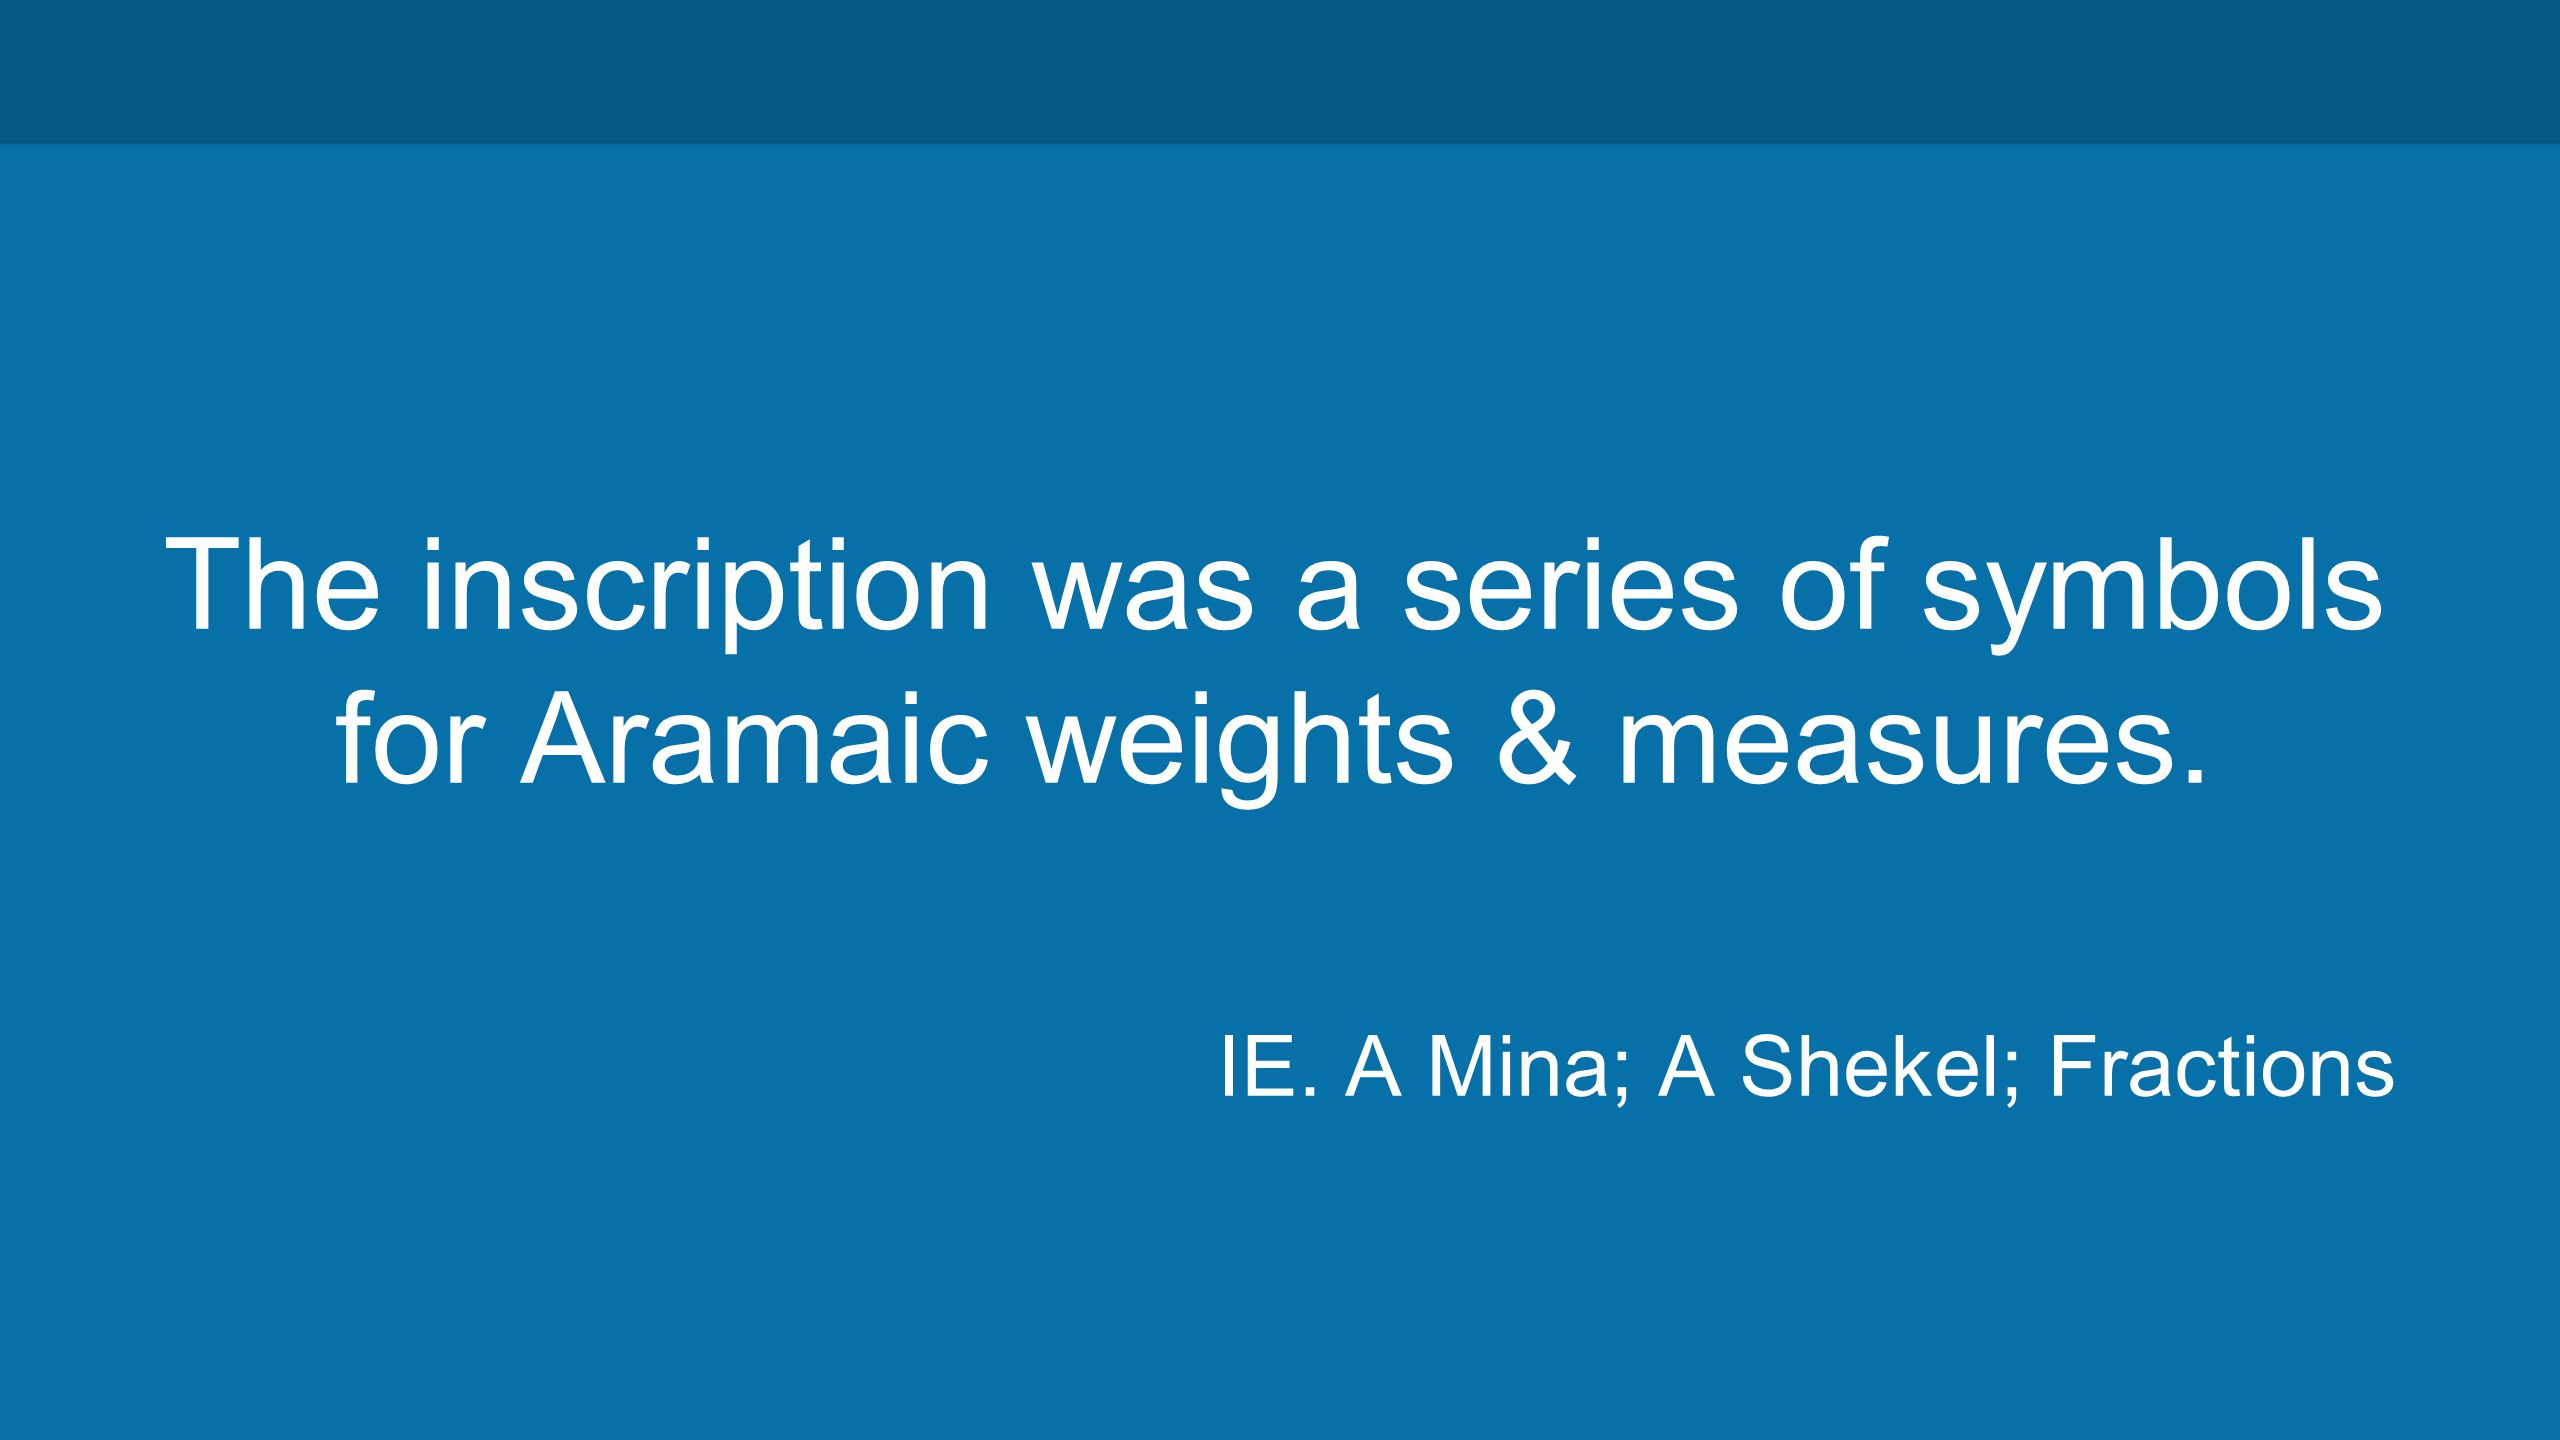 The inscription was a series of symbols for Aramaic weights & measures.